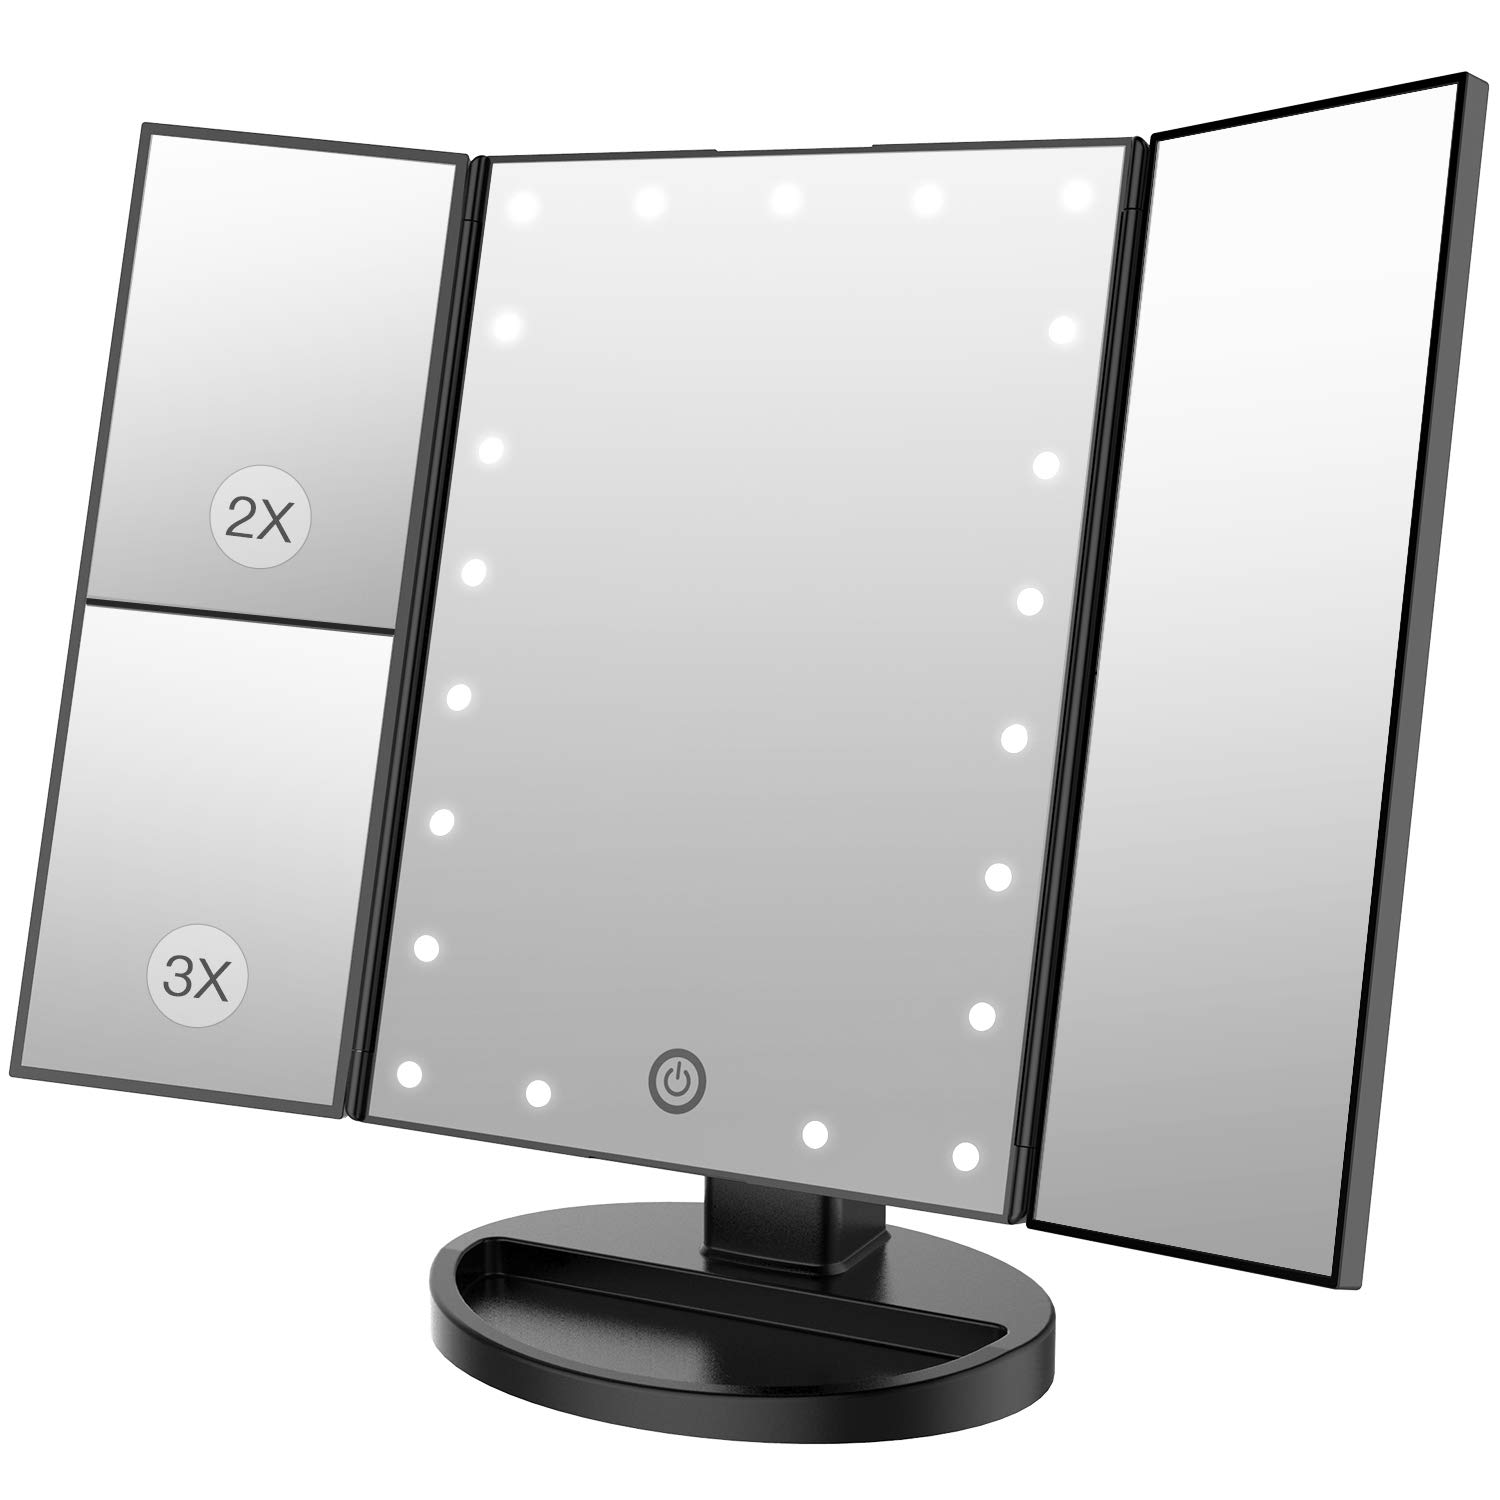 BESTOPE Makeup Vanity Mirror with 3x/2x Magnification,Trifold Mirror with 21 Led Lights,Touch Screen, 180° Adjustable Rotation,Dual Power Supply, Countertop Cosmetic Mirror